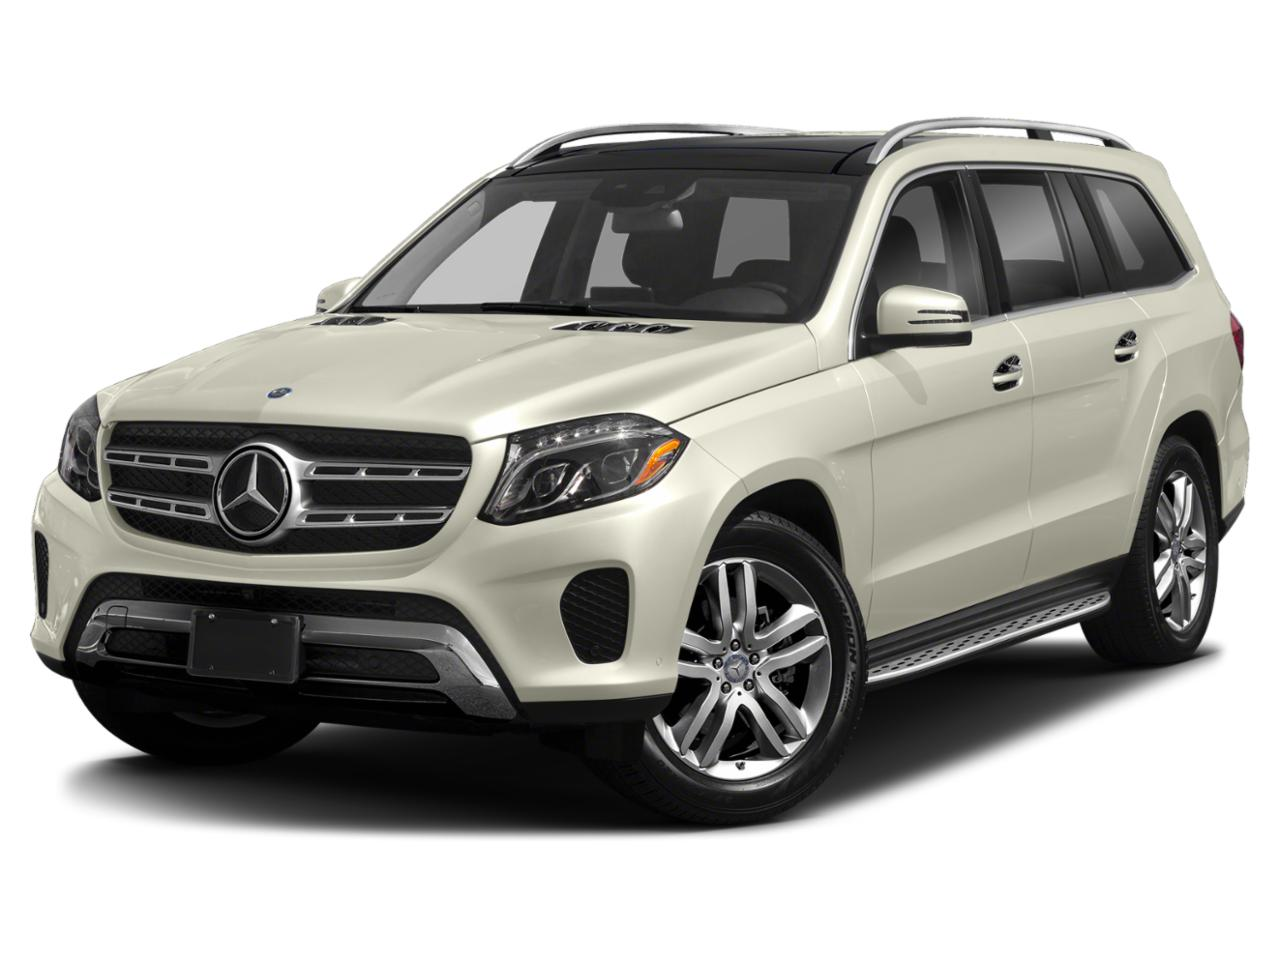 2019 Mercedes-Benz GLS Vehicle Photo in Ocala, FL 34474